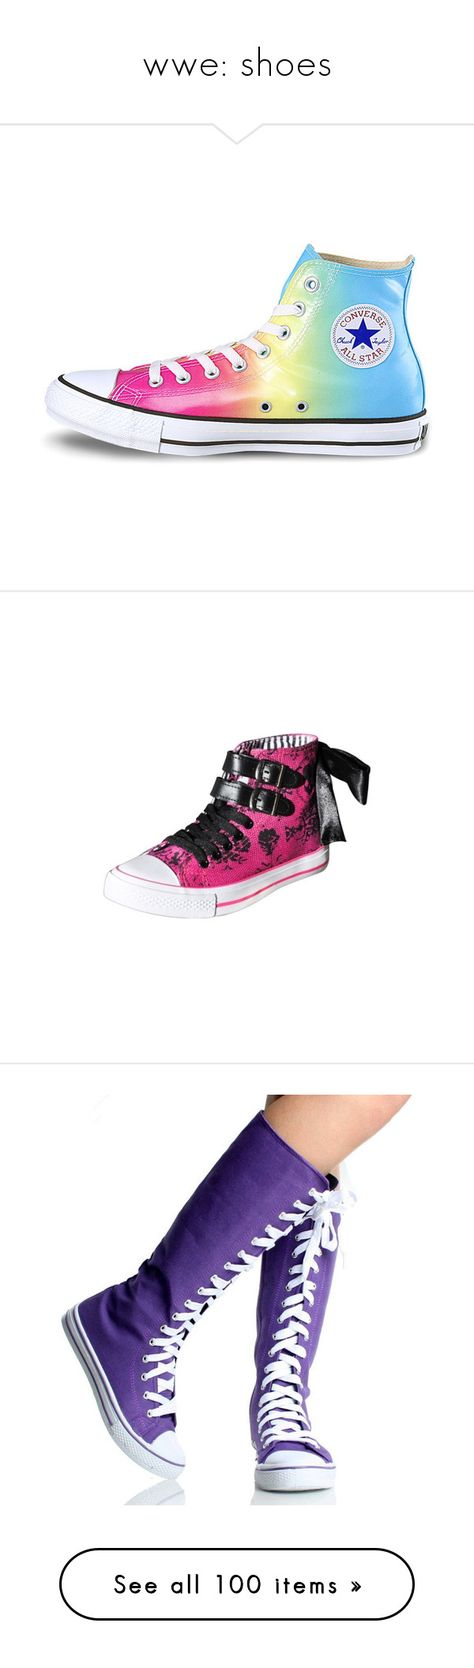 """""""wwe: shoes"""" by zmobieunicorn ❤ liked on Polyvore featuring shoes, sneakers, converse, 18. converse., converse shoes, converse sneakers, converse footwear, converse trainers, iron fist sneakers and high top shoes"""